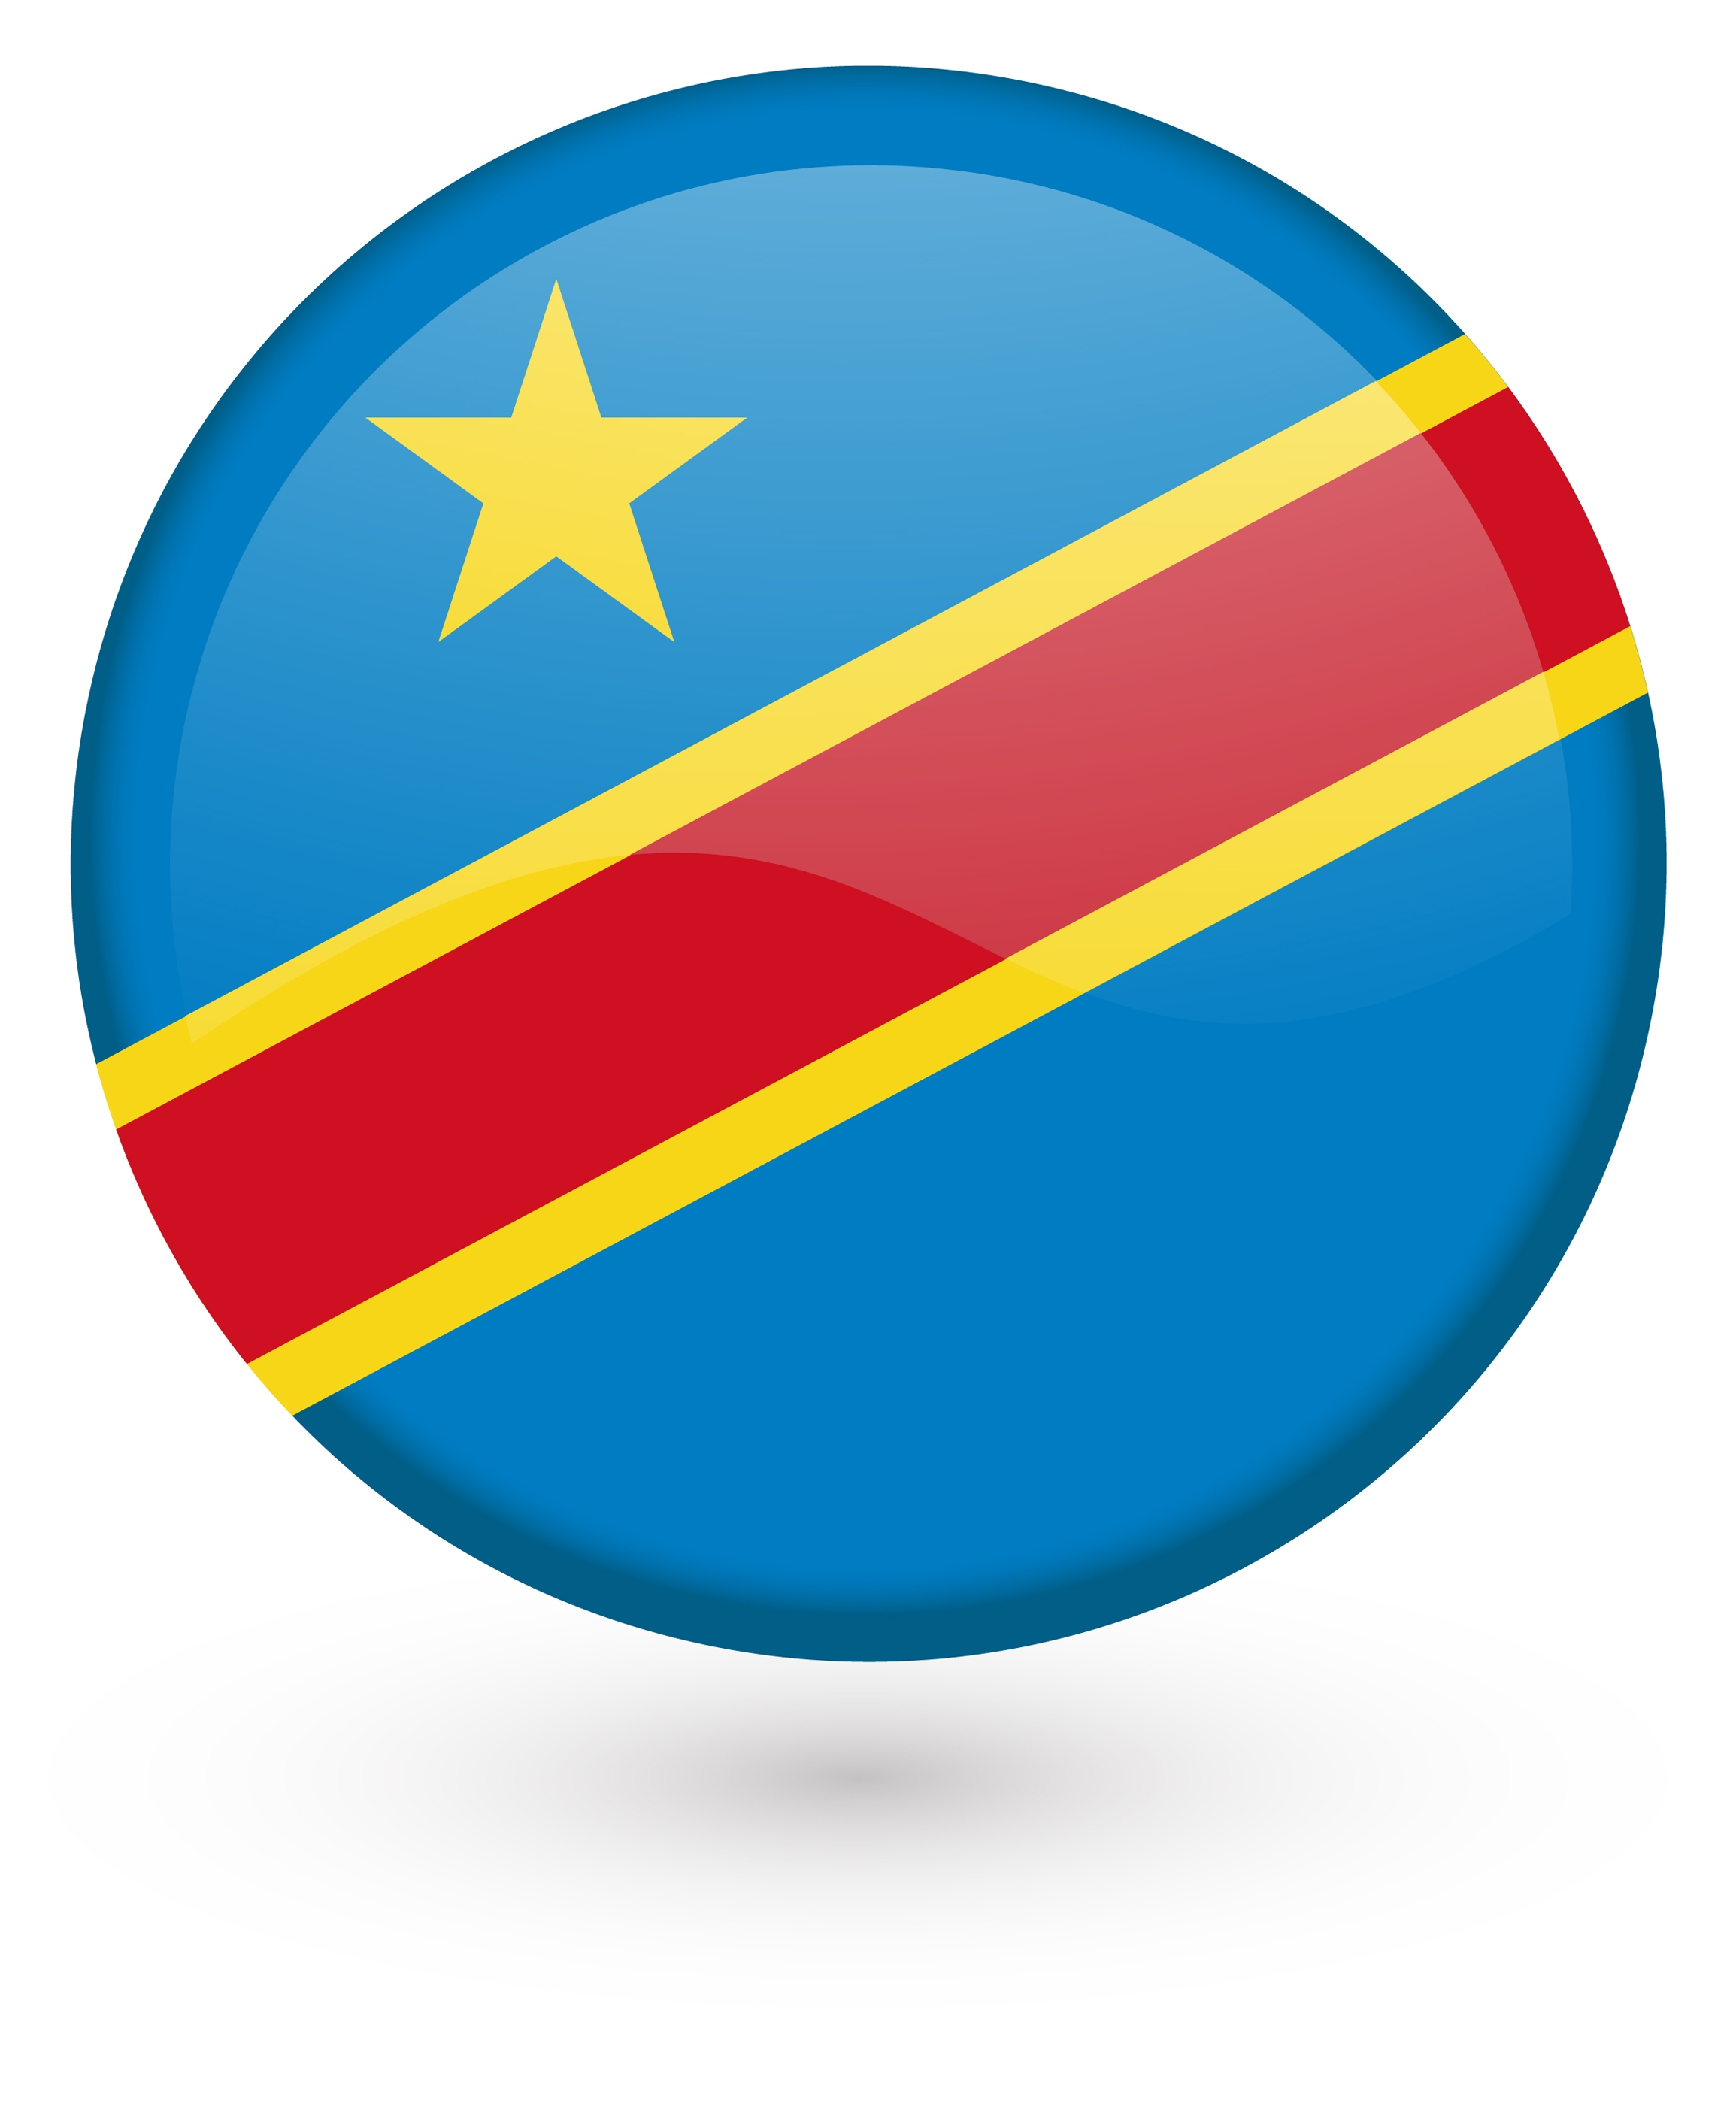 Democratic Republic of Congo.